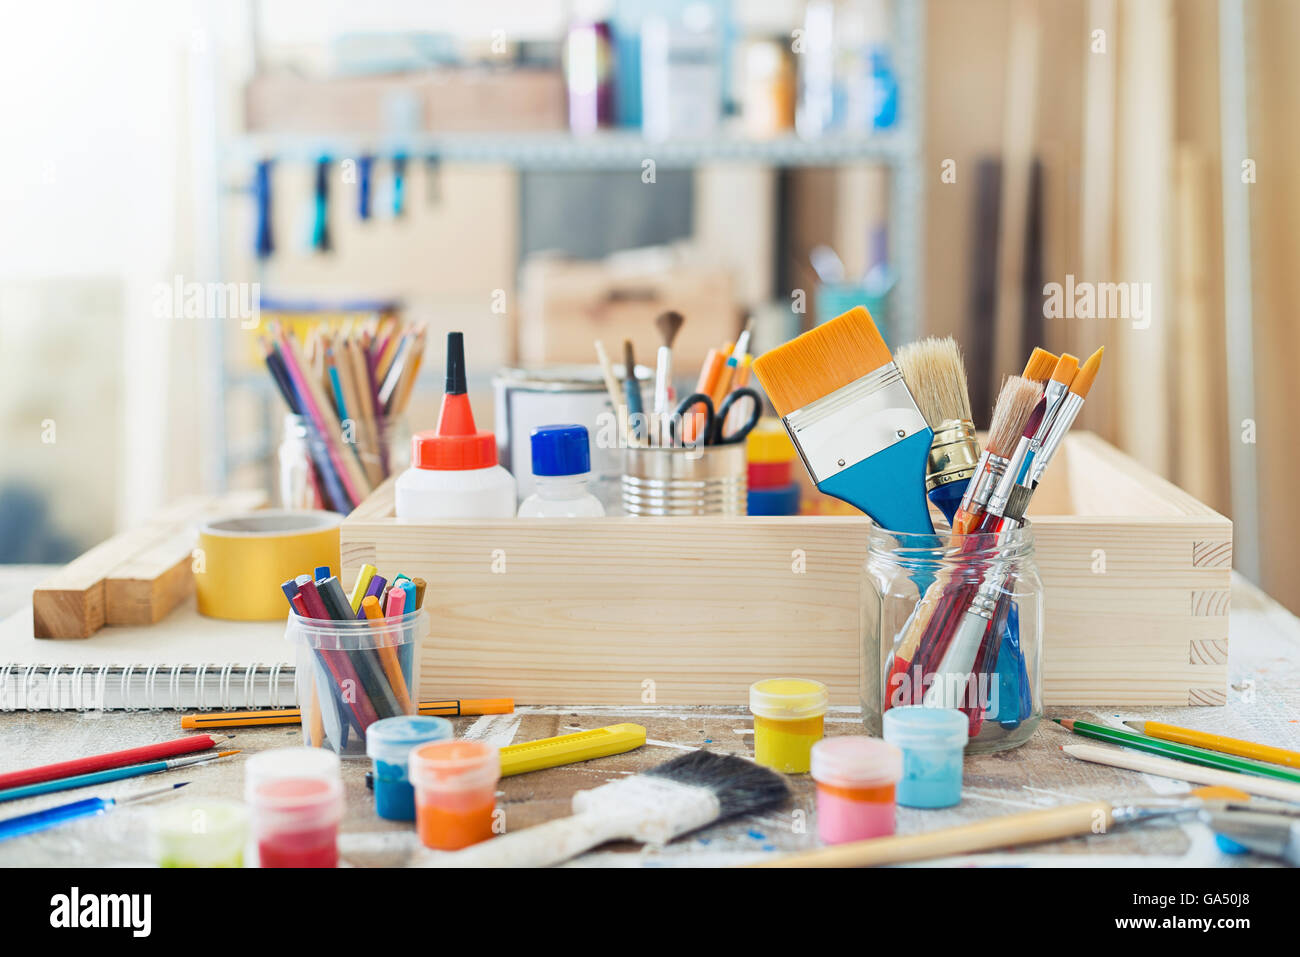 Paint brushes and crafting supplies on the table in a workshop. - Stock Image